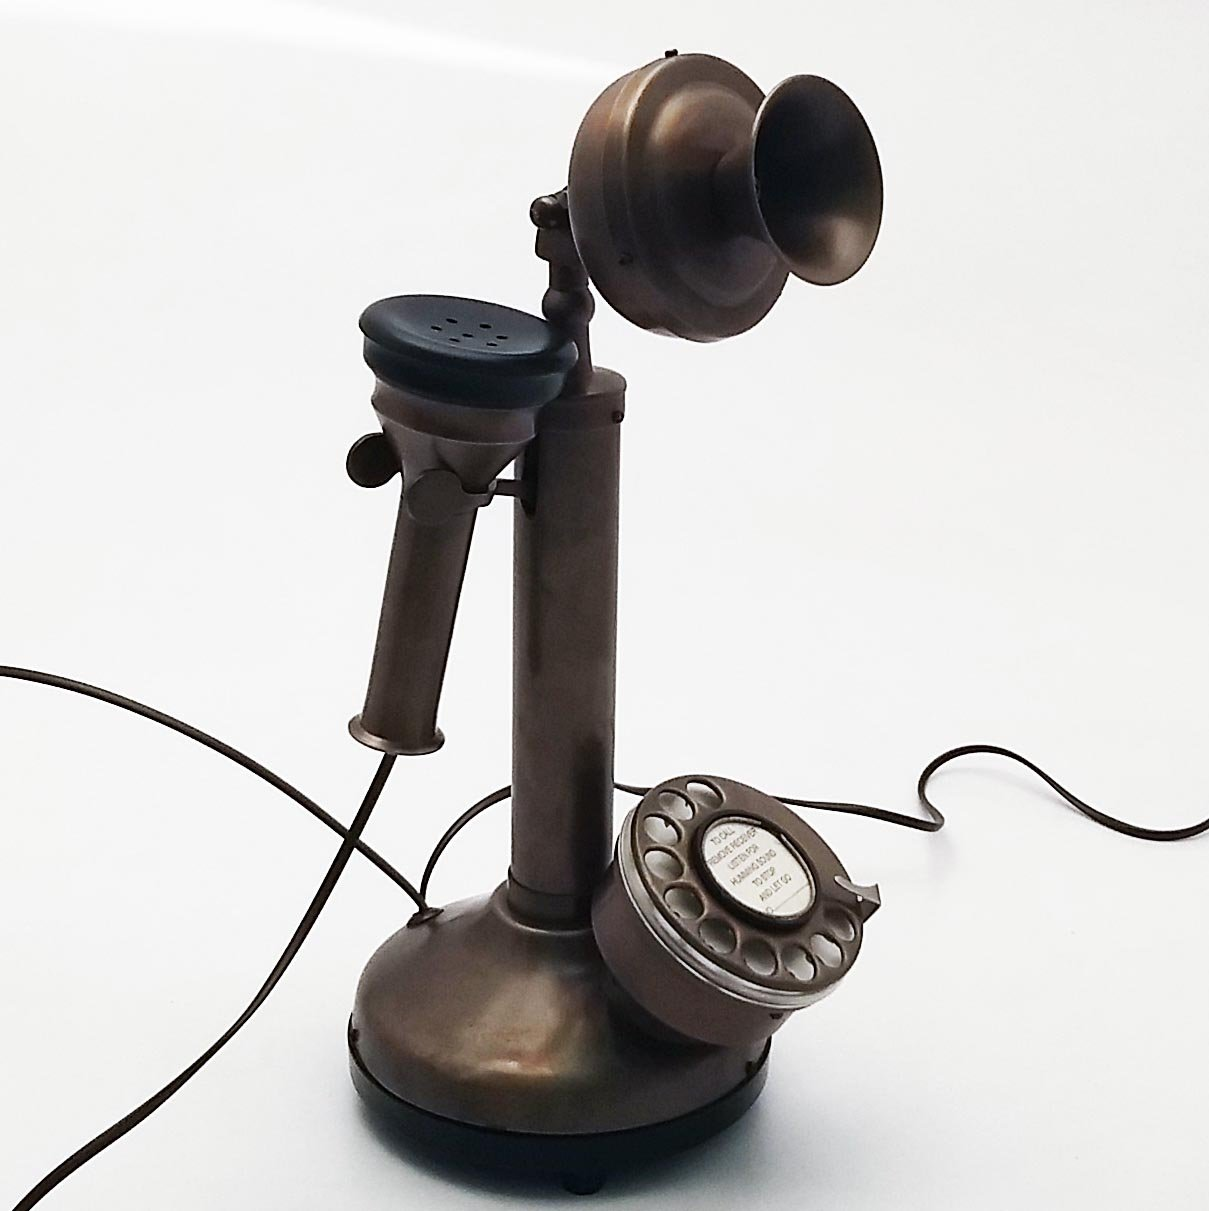 Antique Reproduction Candle stick Nickel Plated Working Telephone Home Decor. (Brown&Black)